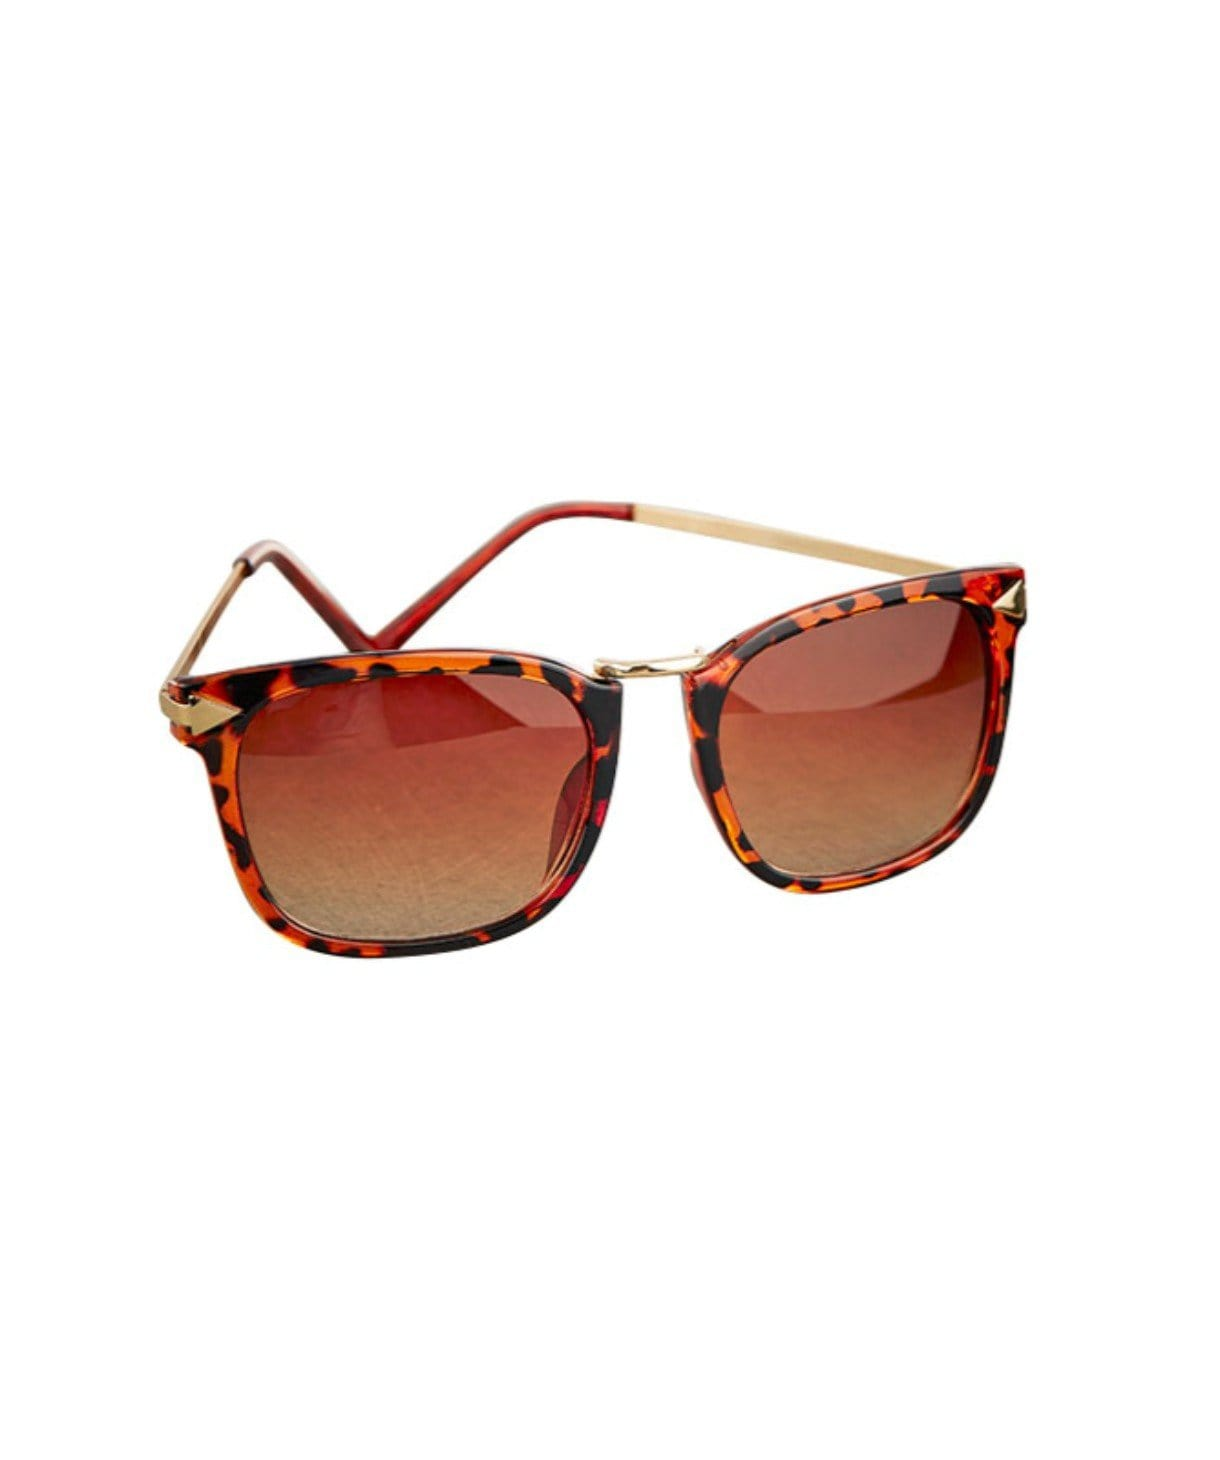 Tortoise Shell Metal Bridge Sunglasses - Uptownie